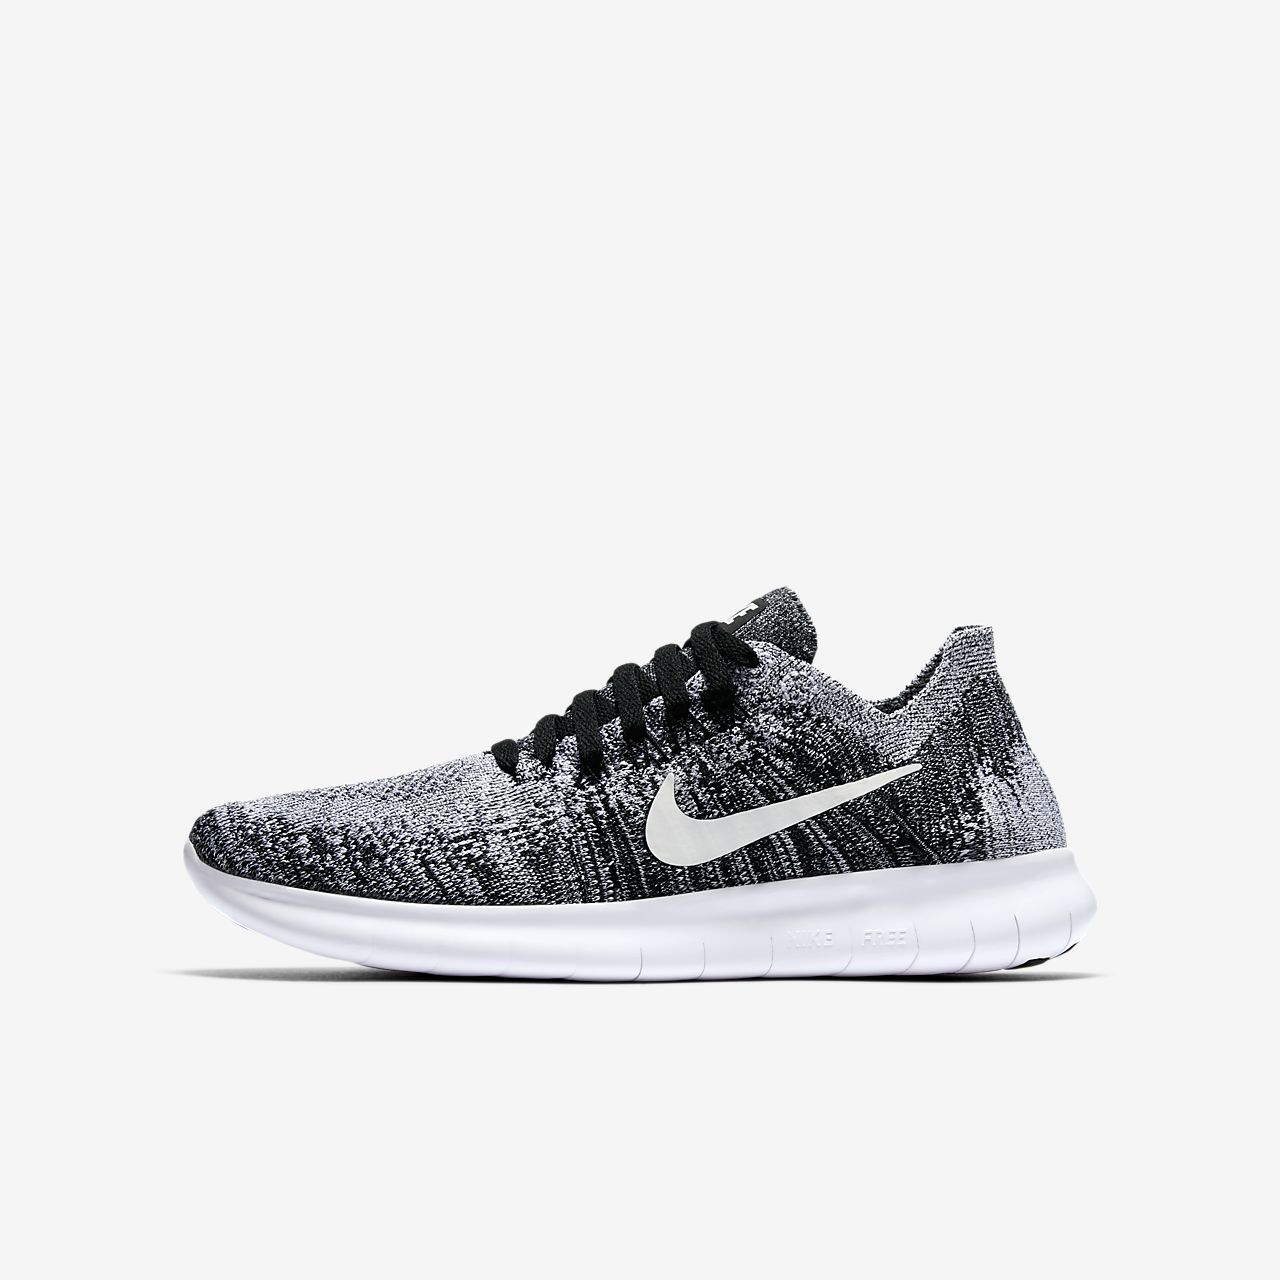 c4887e370aa4 official store nike flyknit kids cbce1 ebb3a  closeout nice running nike  shoes for kids 5d35b b7847